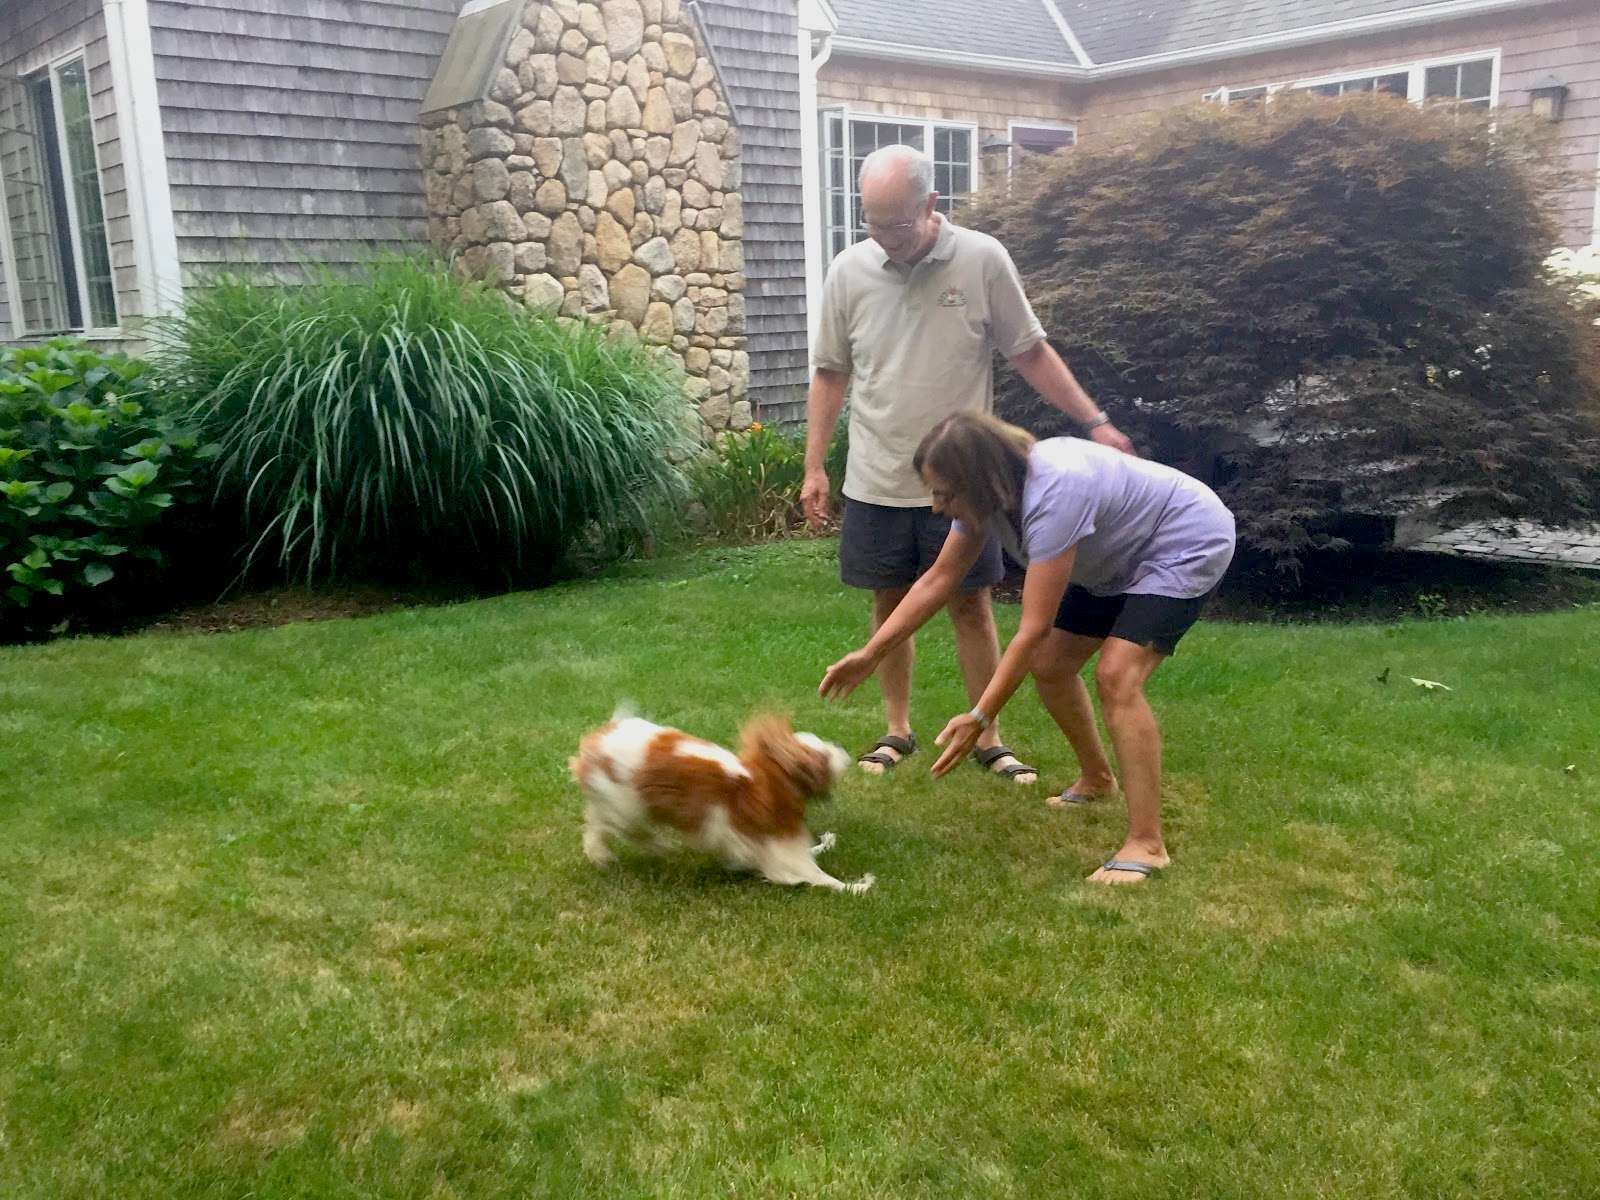 Bob and Cheryl play with their dog Spice in the grass in front of their house.